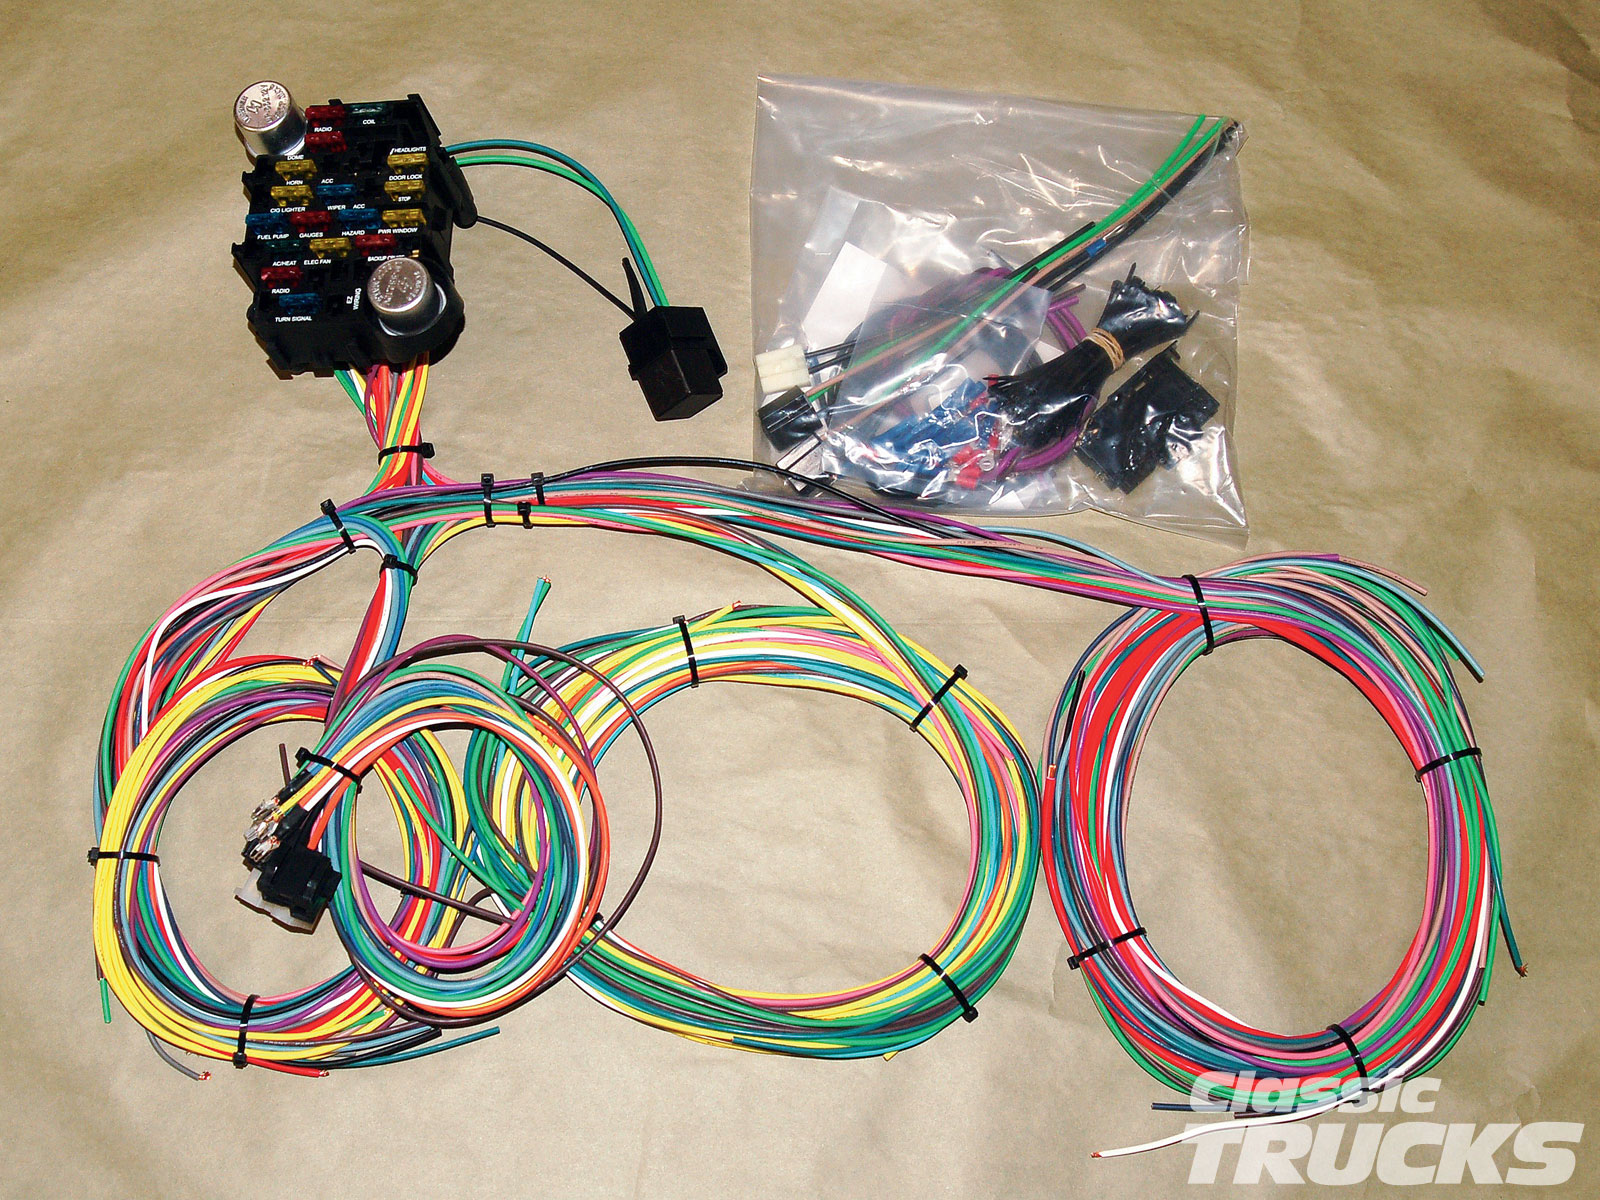 1010clt 02 o aftermarket wiring harness install kit?resize\\\=665%2C499 painless wiring harness australia tamahuproject org painless wiring harness australia at bayanpartner.co